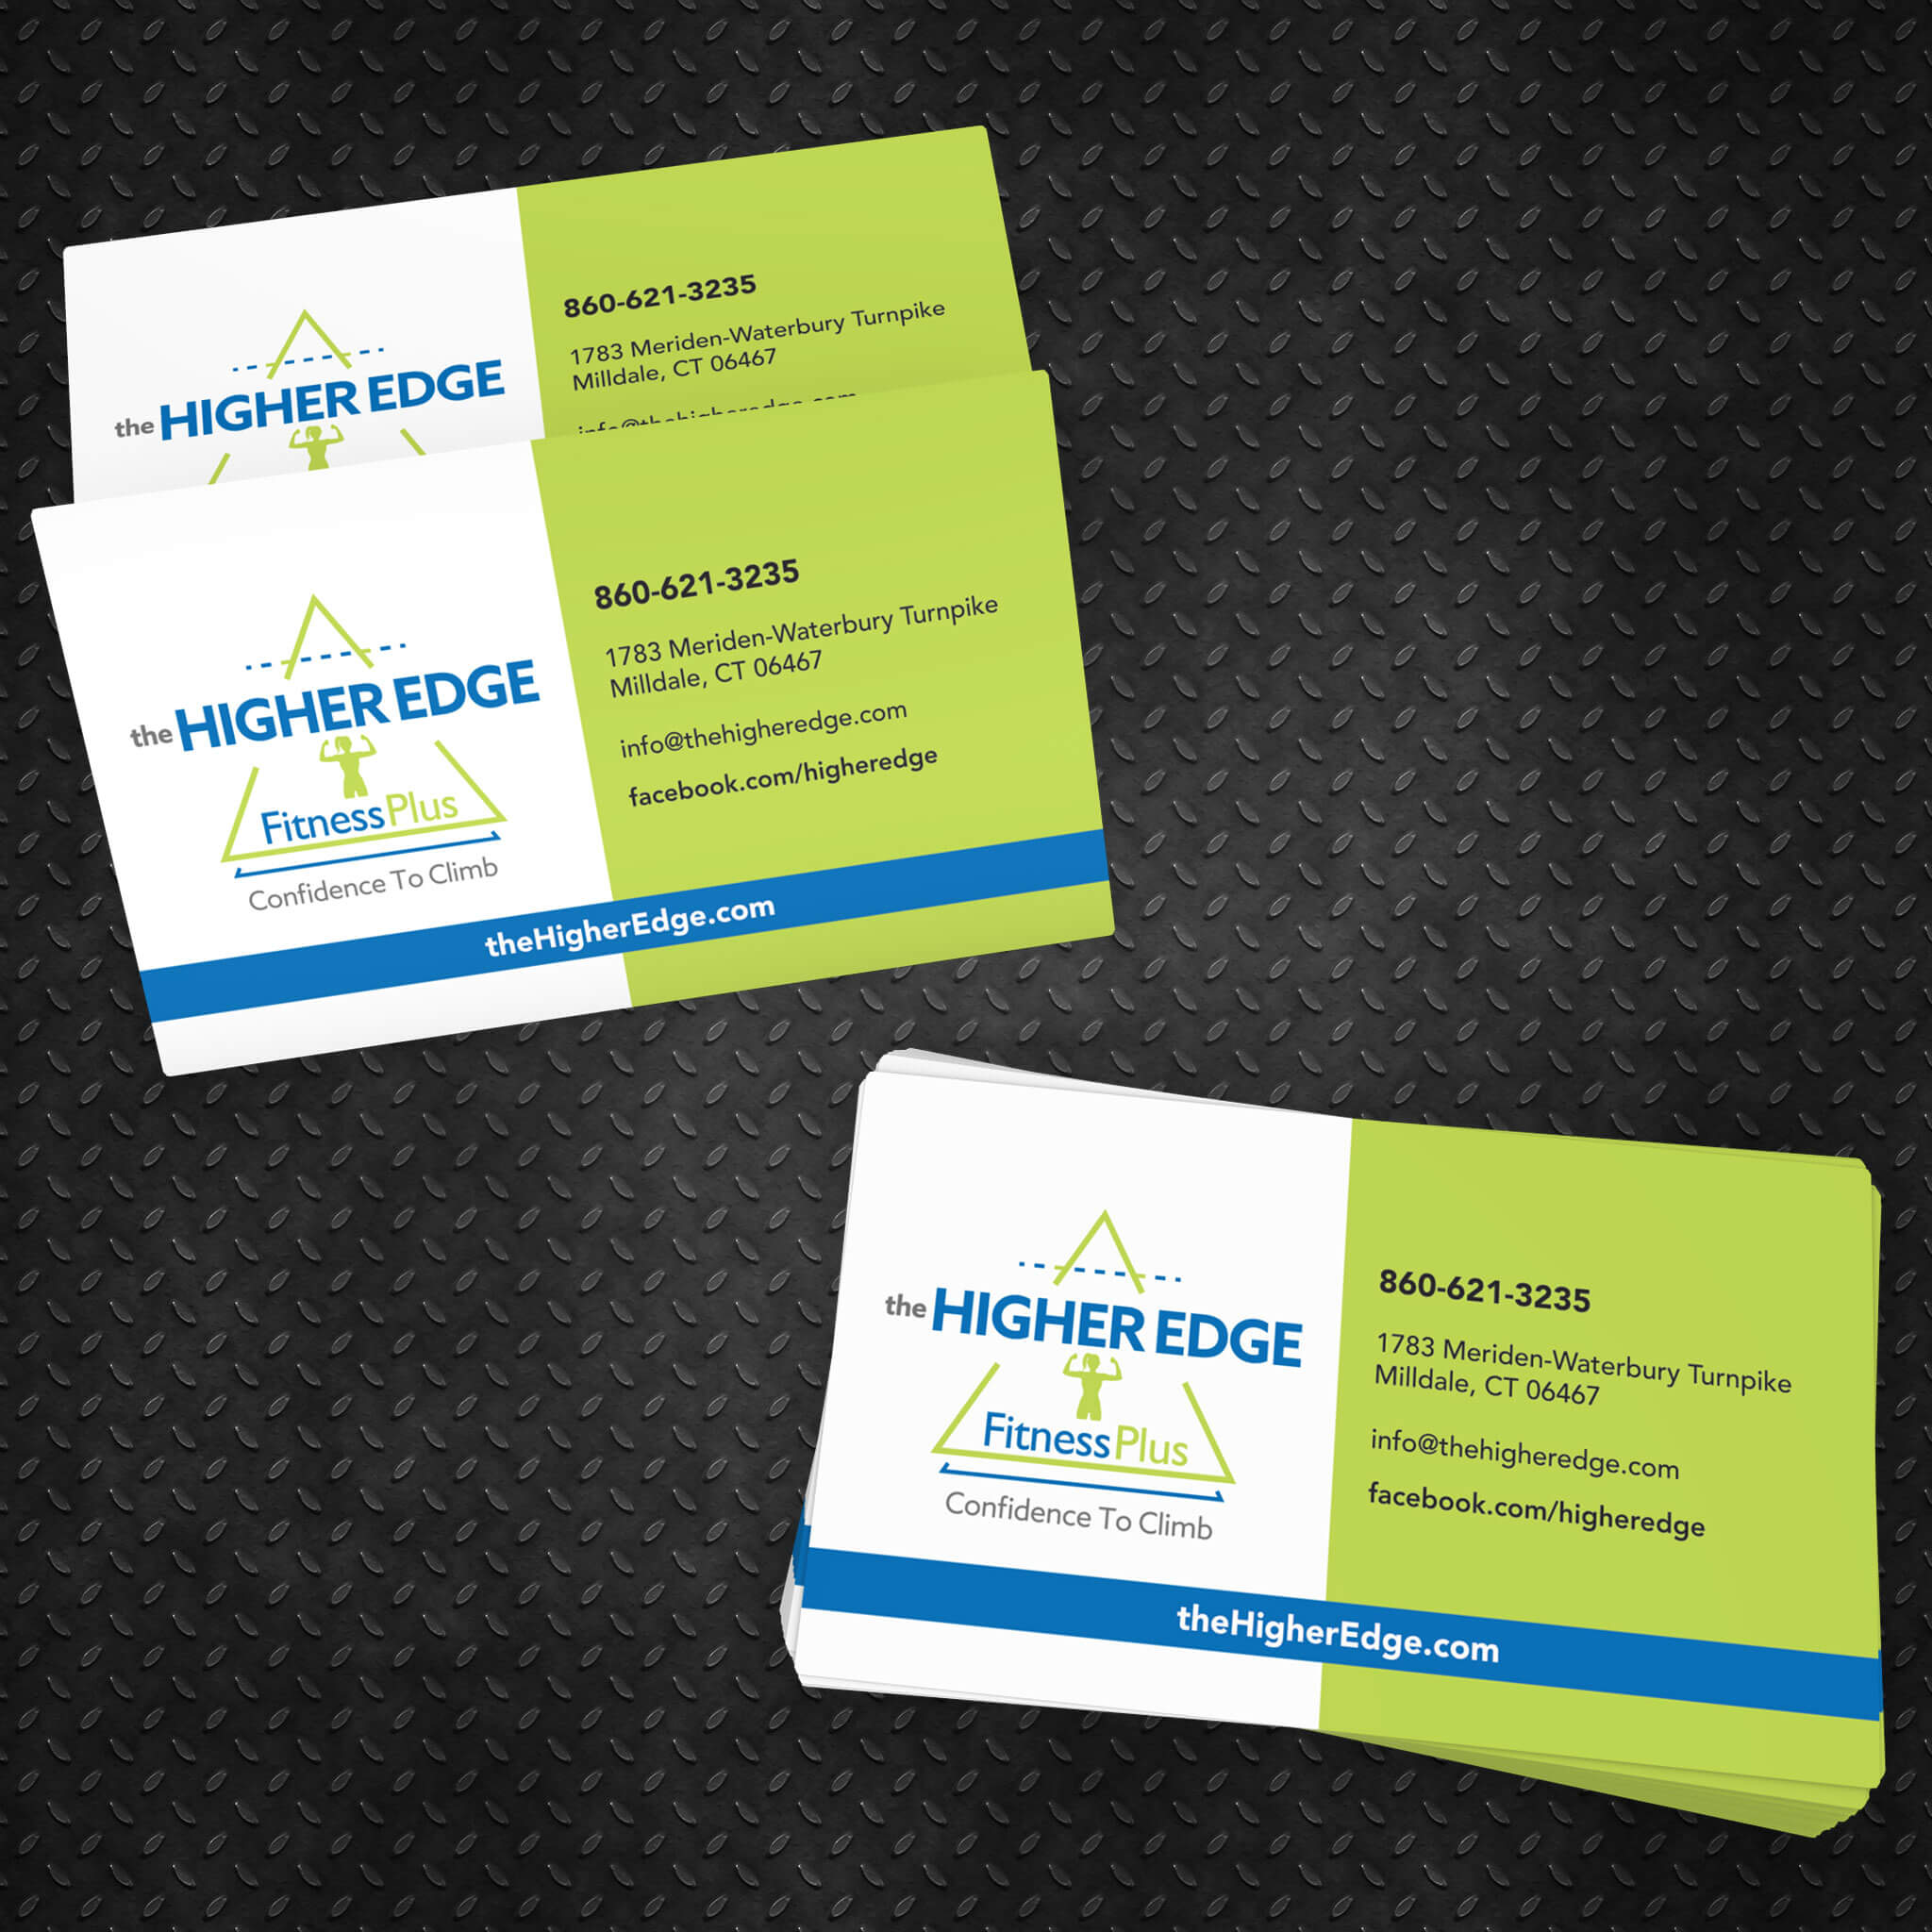 The Higher Edge Business Card by Kevin Ferrisi